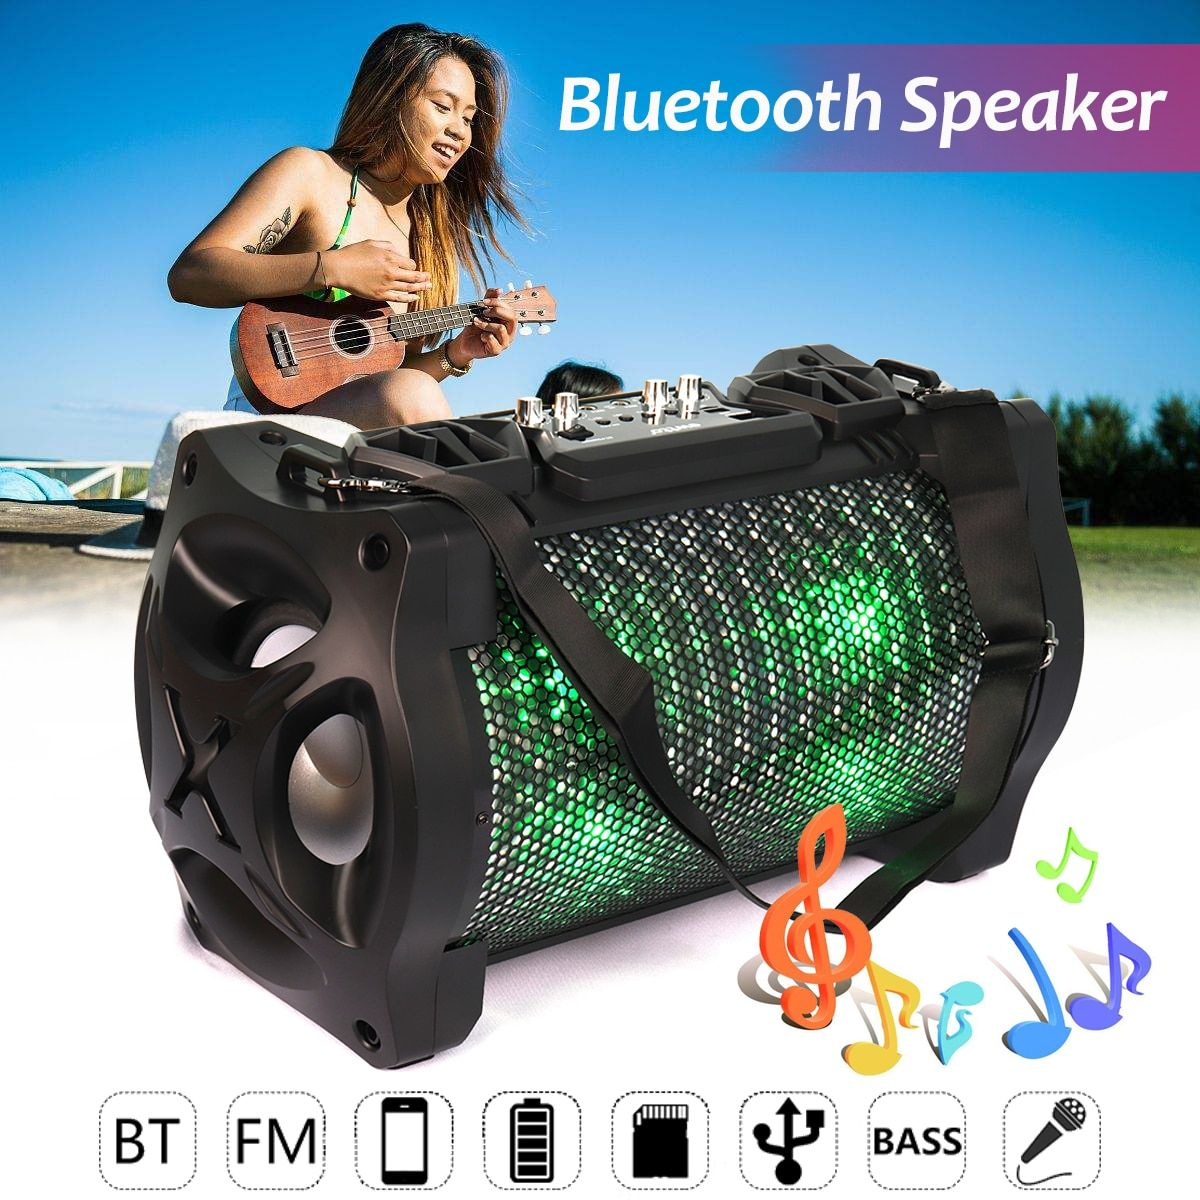 Outdoor Portable Subwoofer Bluetooth Speaker Karabale with Microphone Super Bass Stereo FM Radio AUX/USB/TF Card Music Player